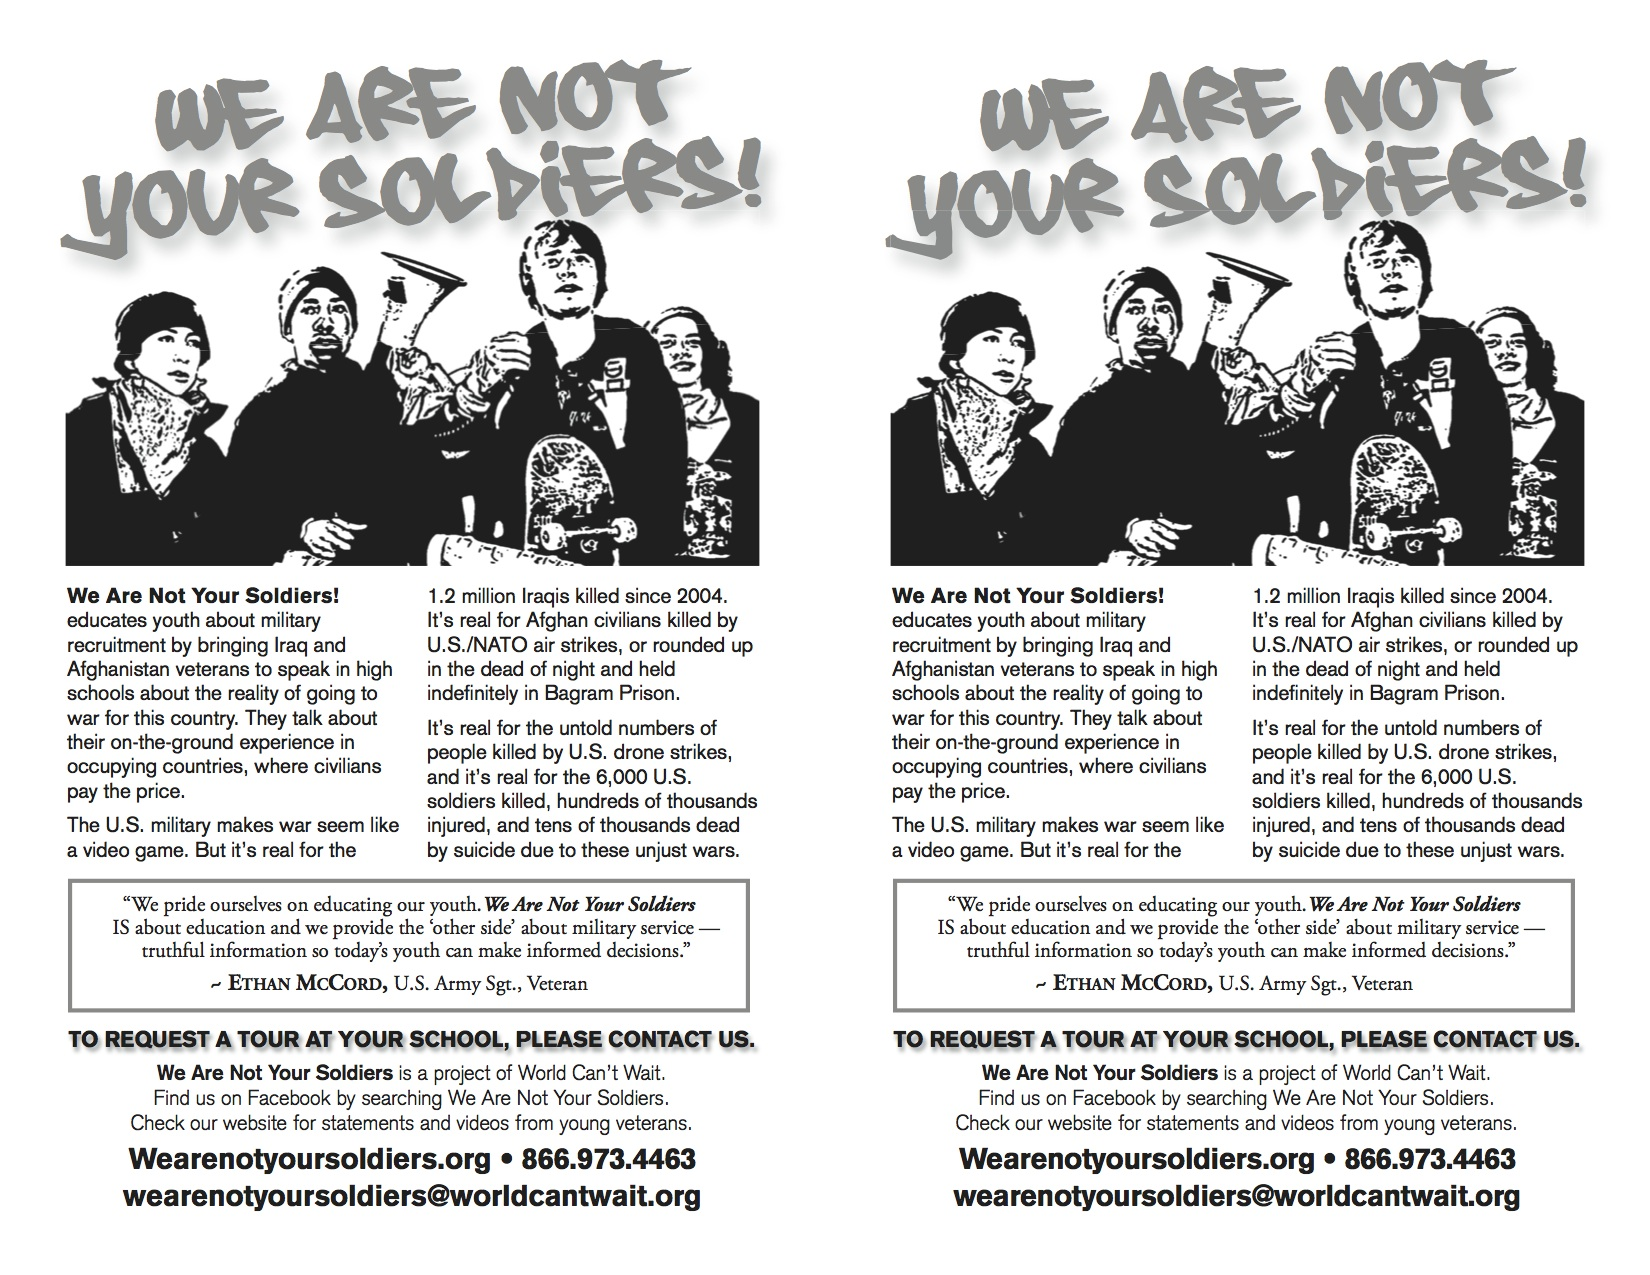 We are not your soldiers flier